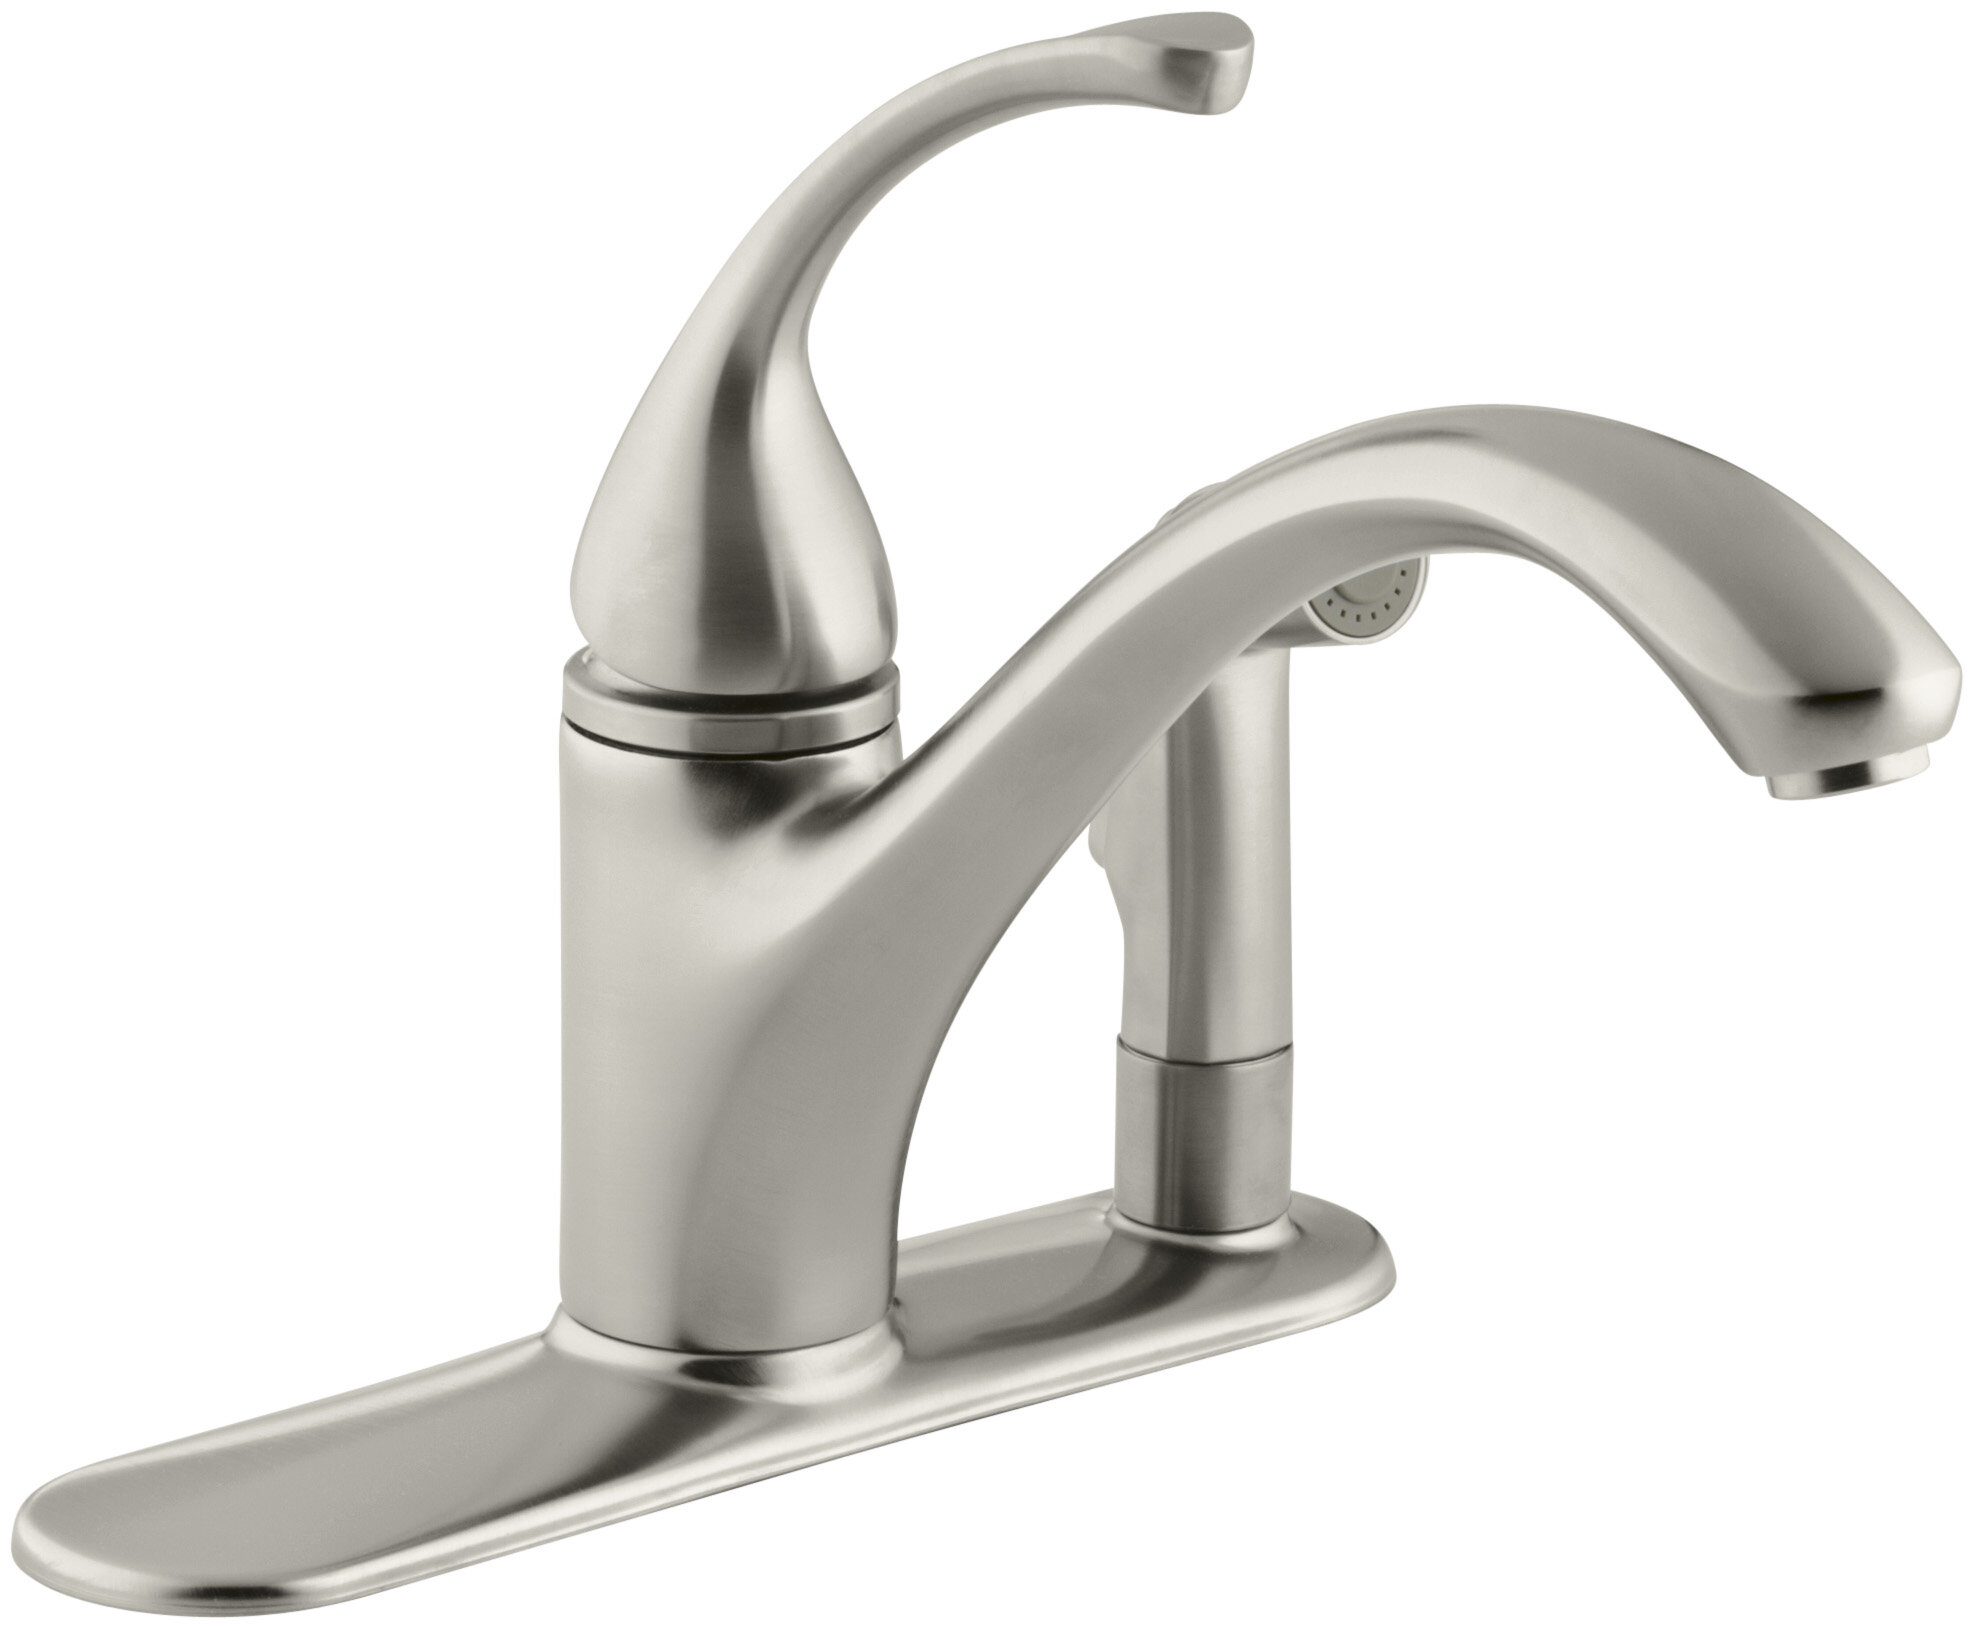 Kohler Forte 3 Hole Kitchen Sink Faucet With 9 1 16 Spout With Matching Finish Sidespray In Escutcheon Reviews Wayfair